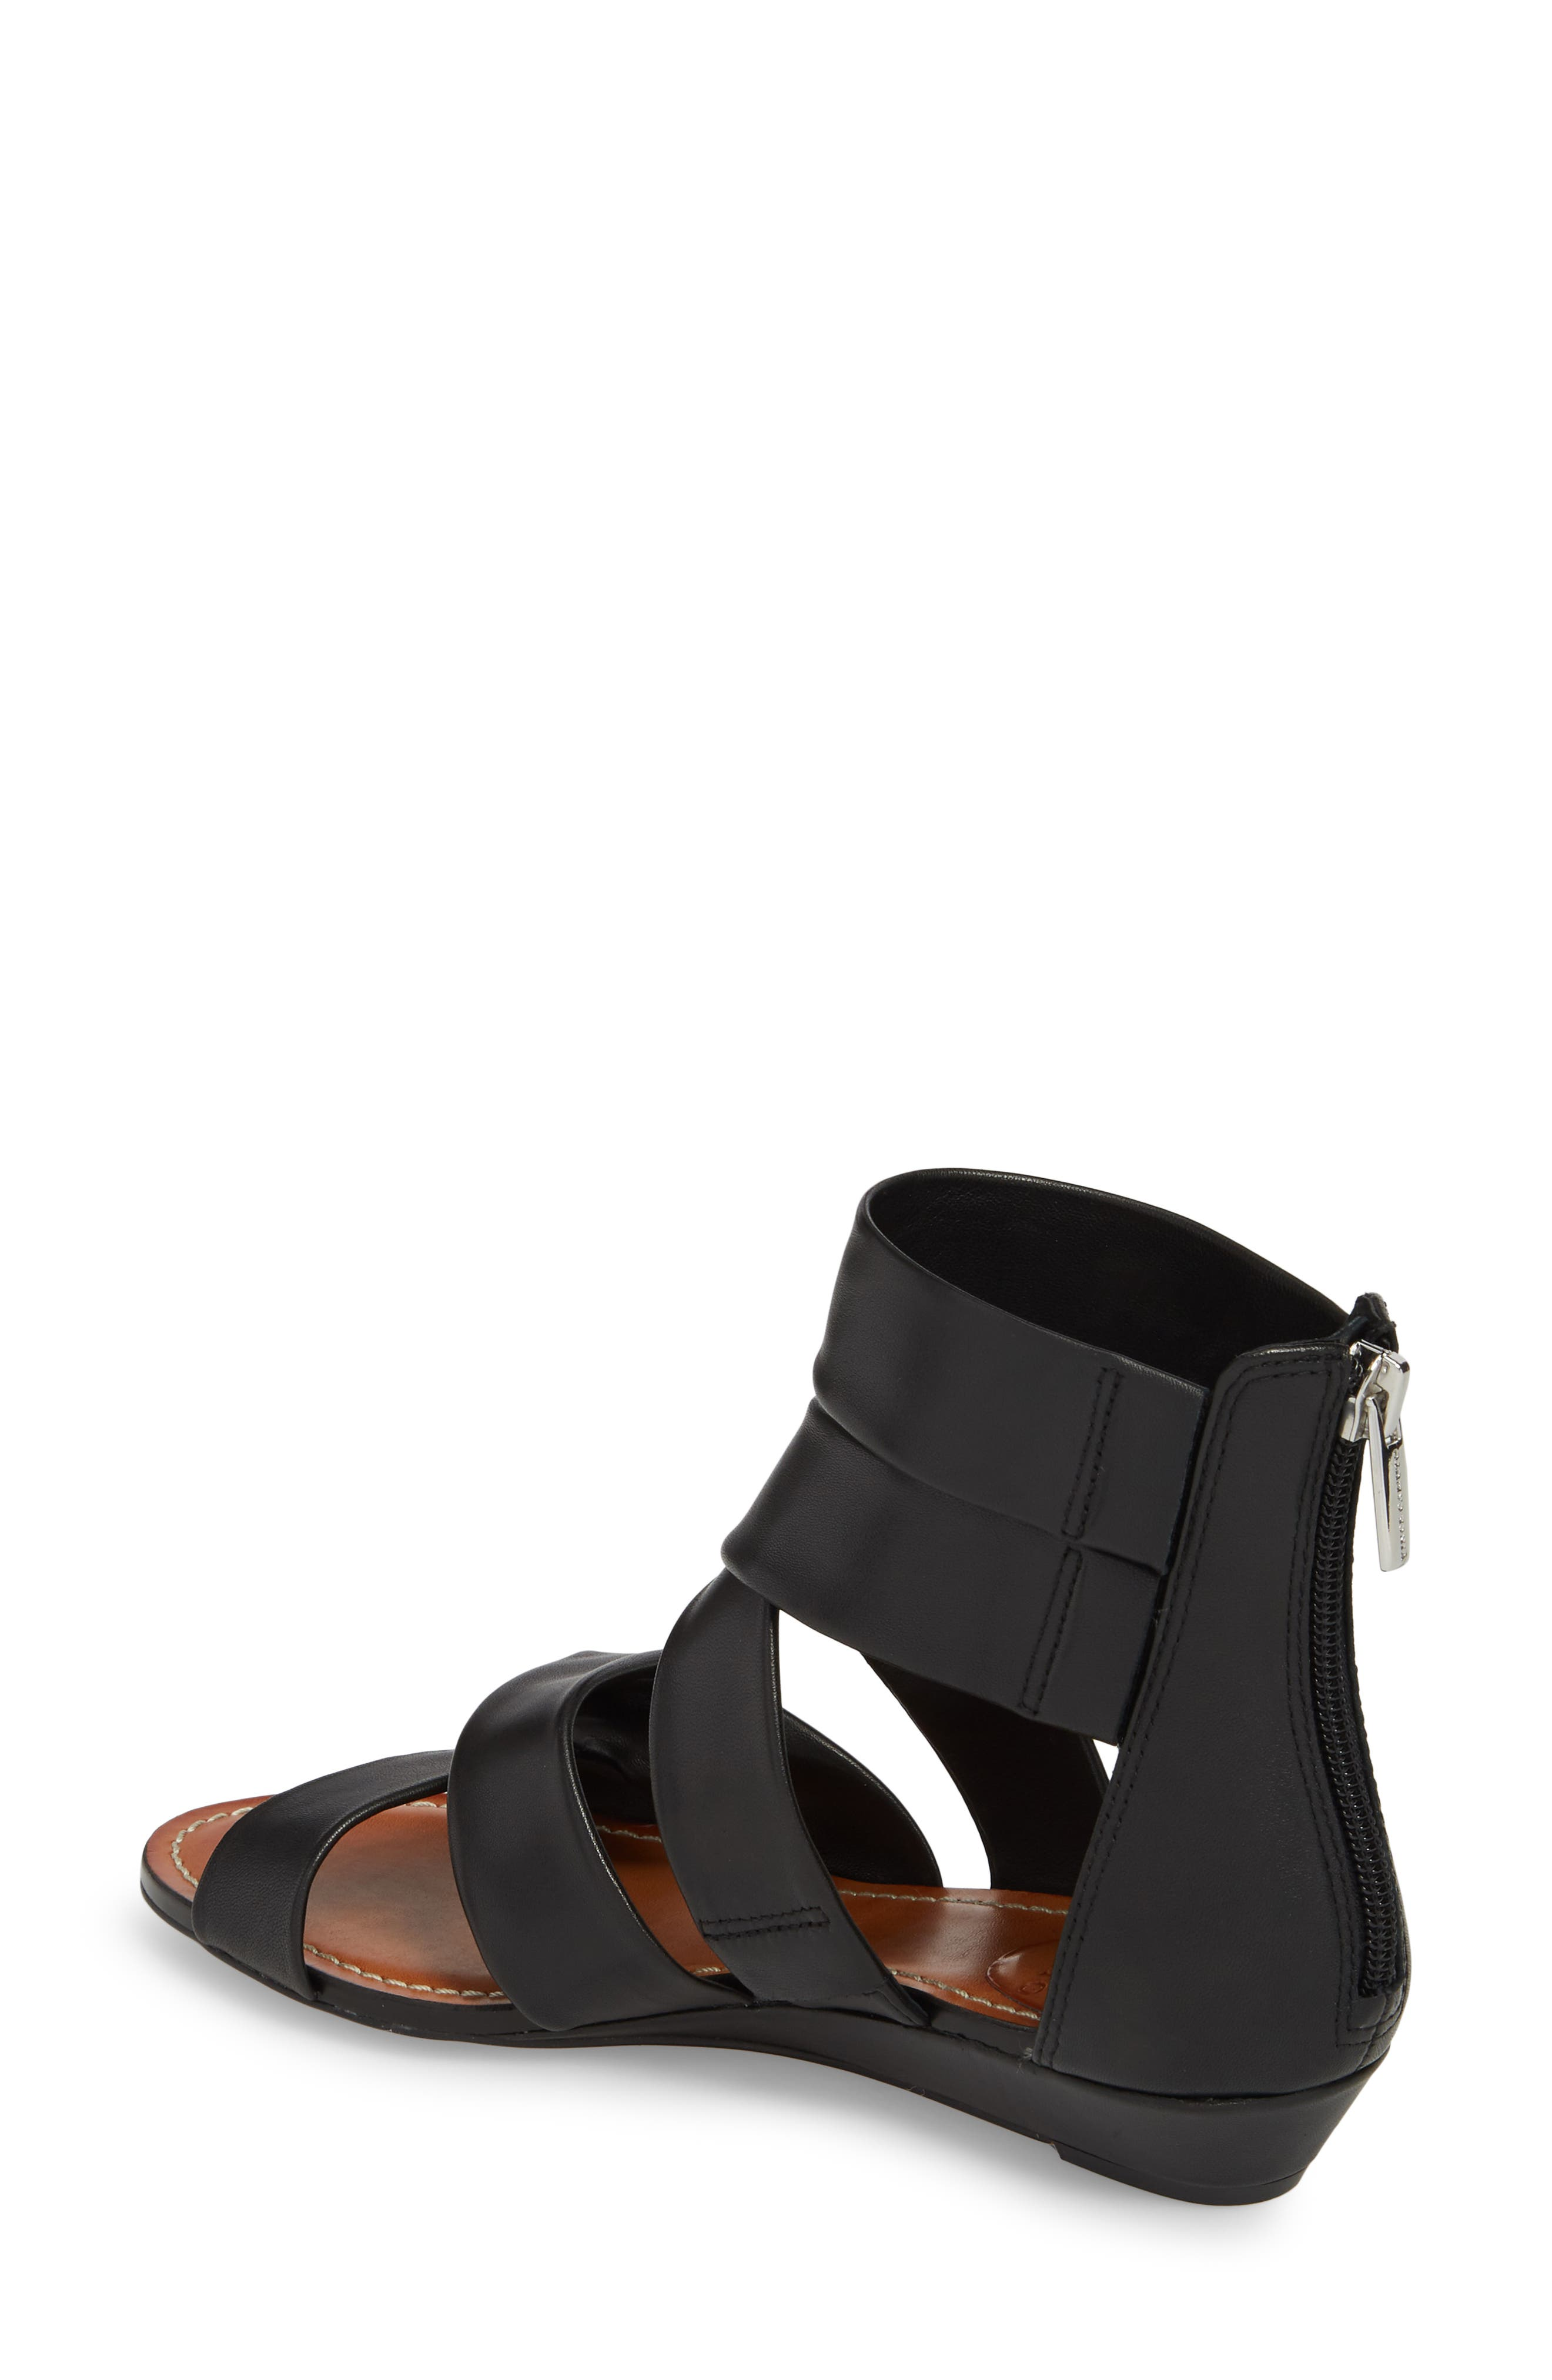 Seevina Low Wedge Sandal,                             Alternate thumbnail 2, color,                             BLACK LEATHER